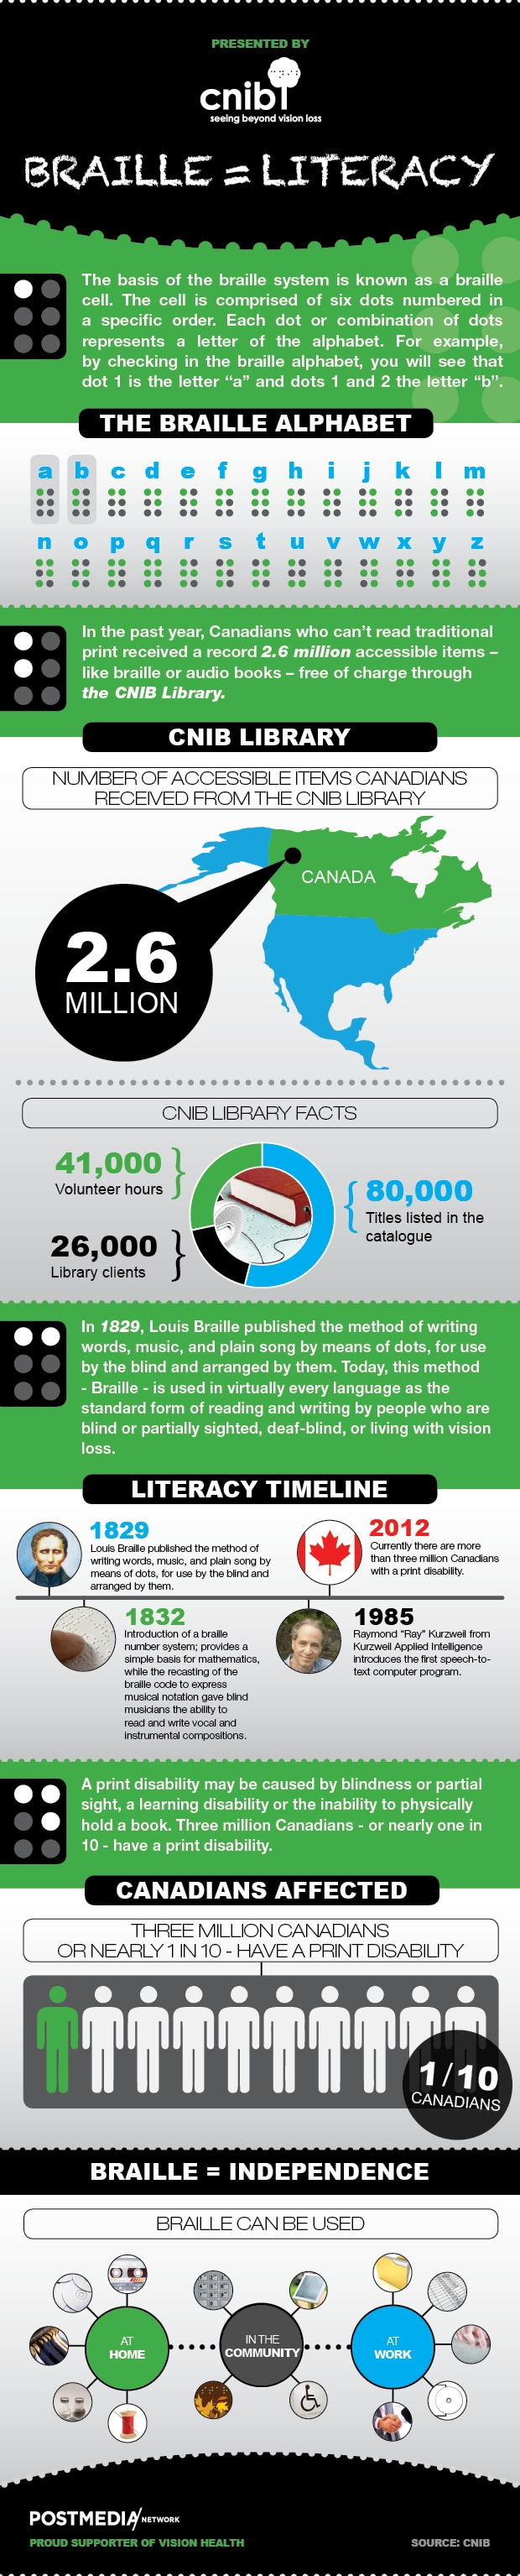 Braille = literacy infographic Braille, Literacy